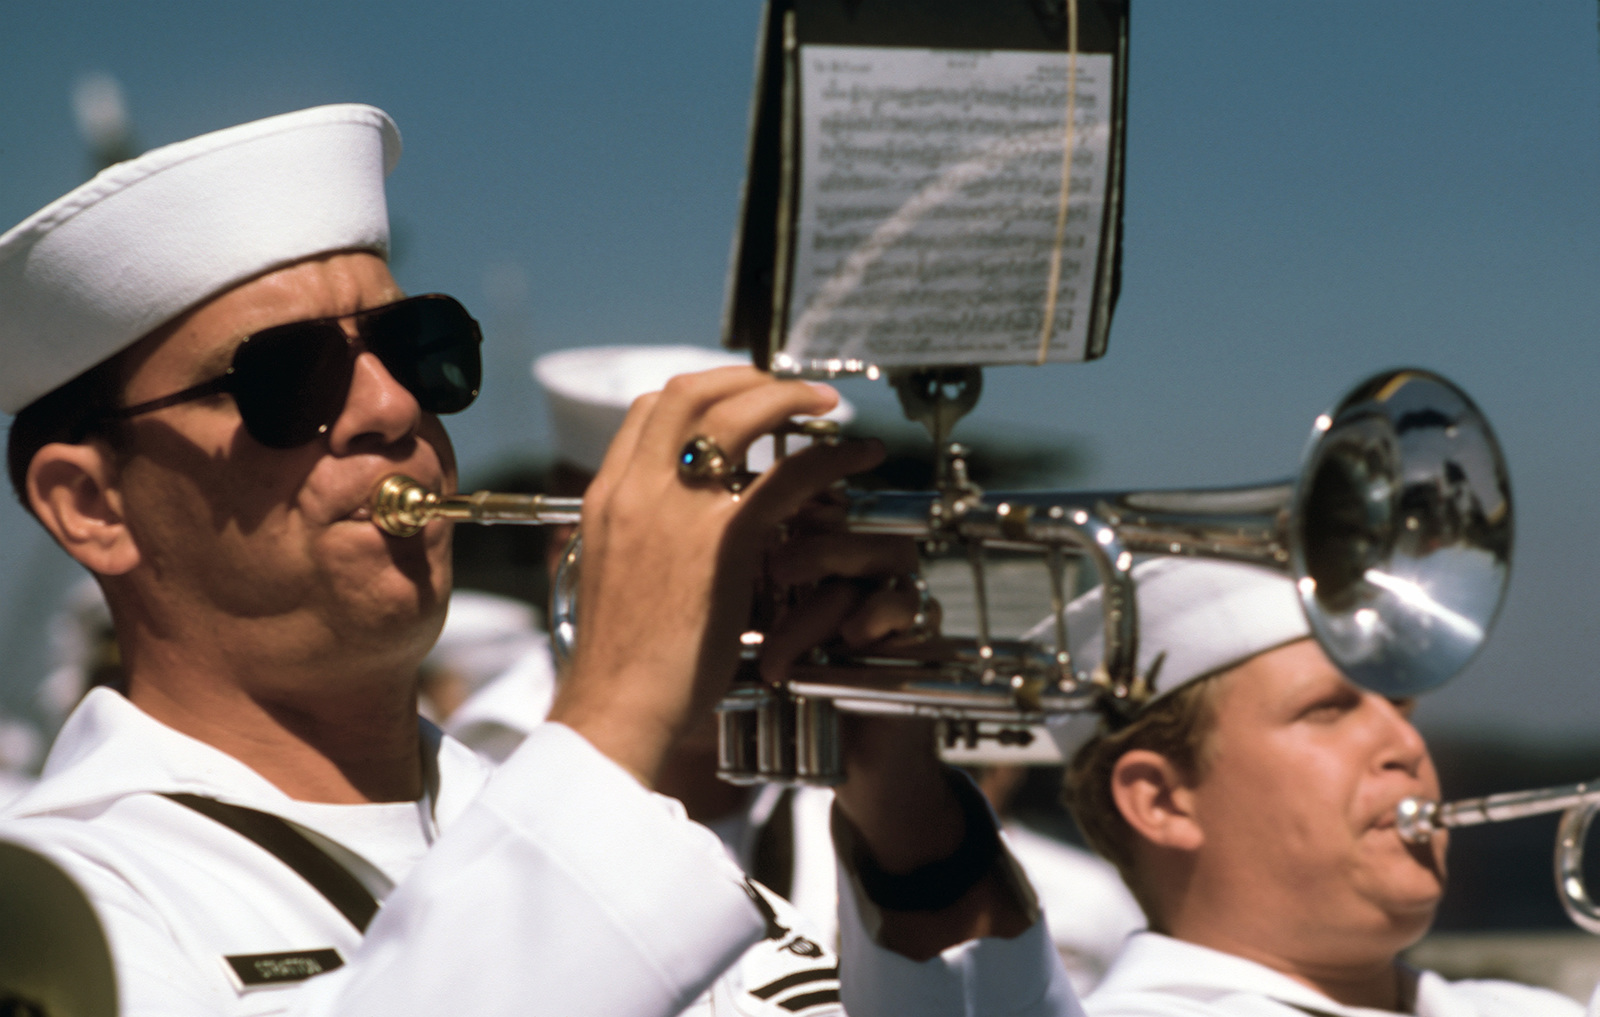 d090ba5018 members-of-a-us-navy-band-perform-during-a-ceremony-commemorating-the-completion-4caa9d-1600.jpg